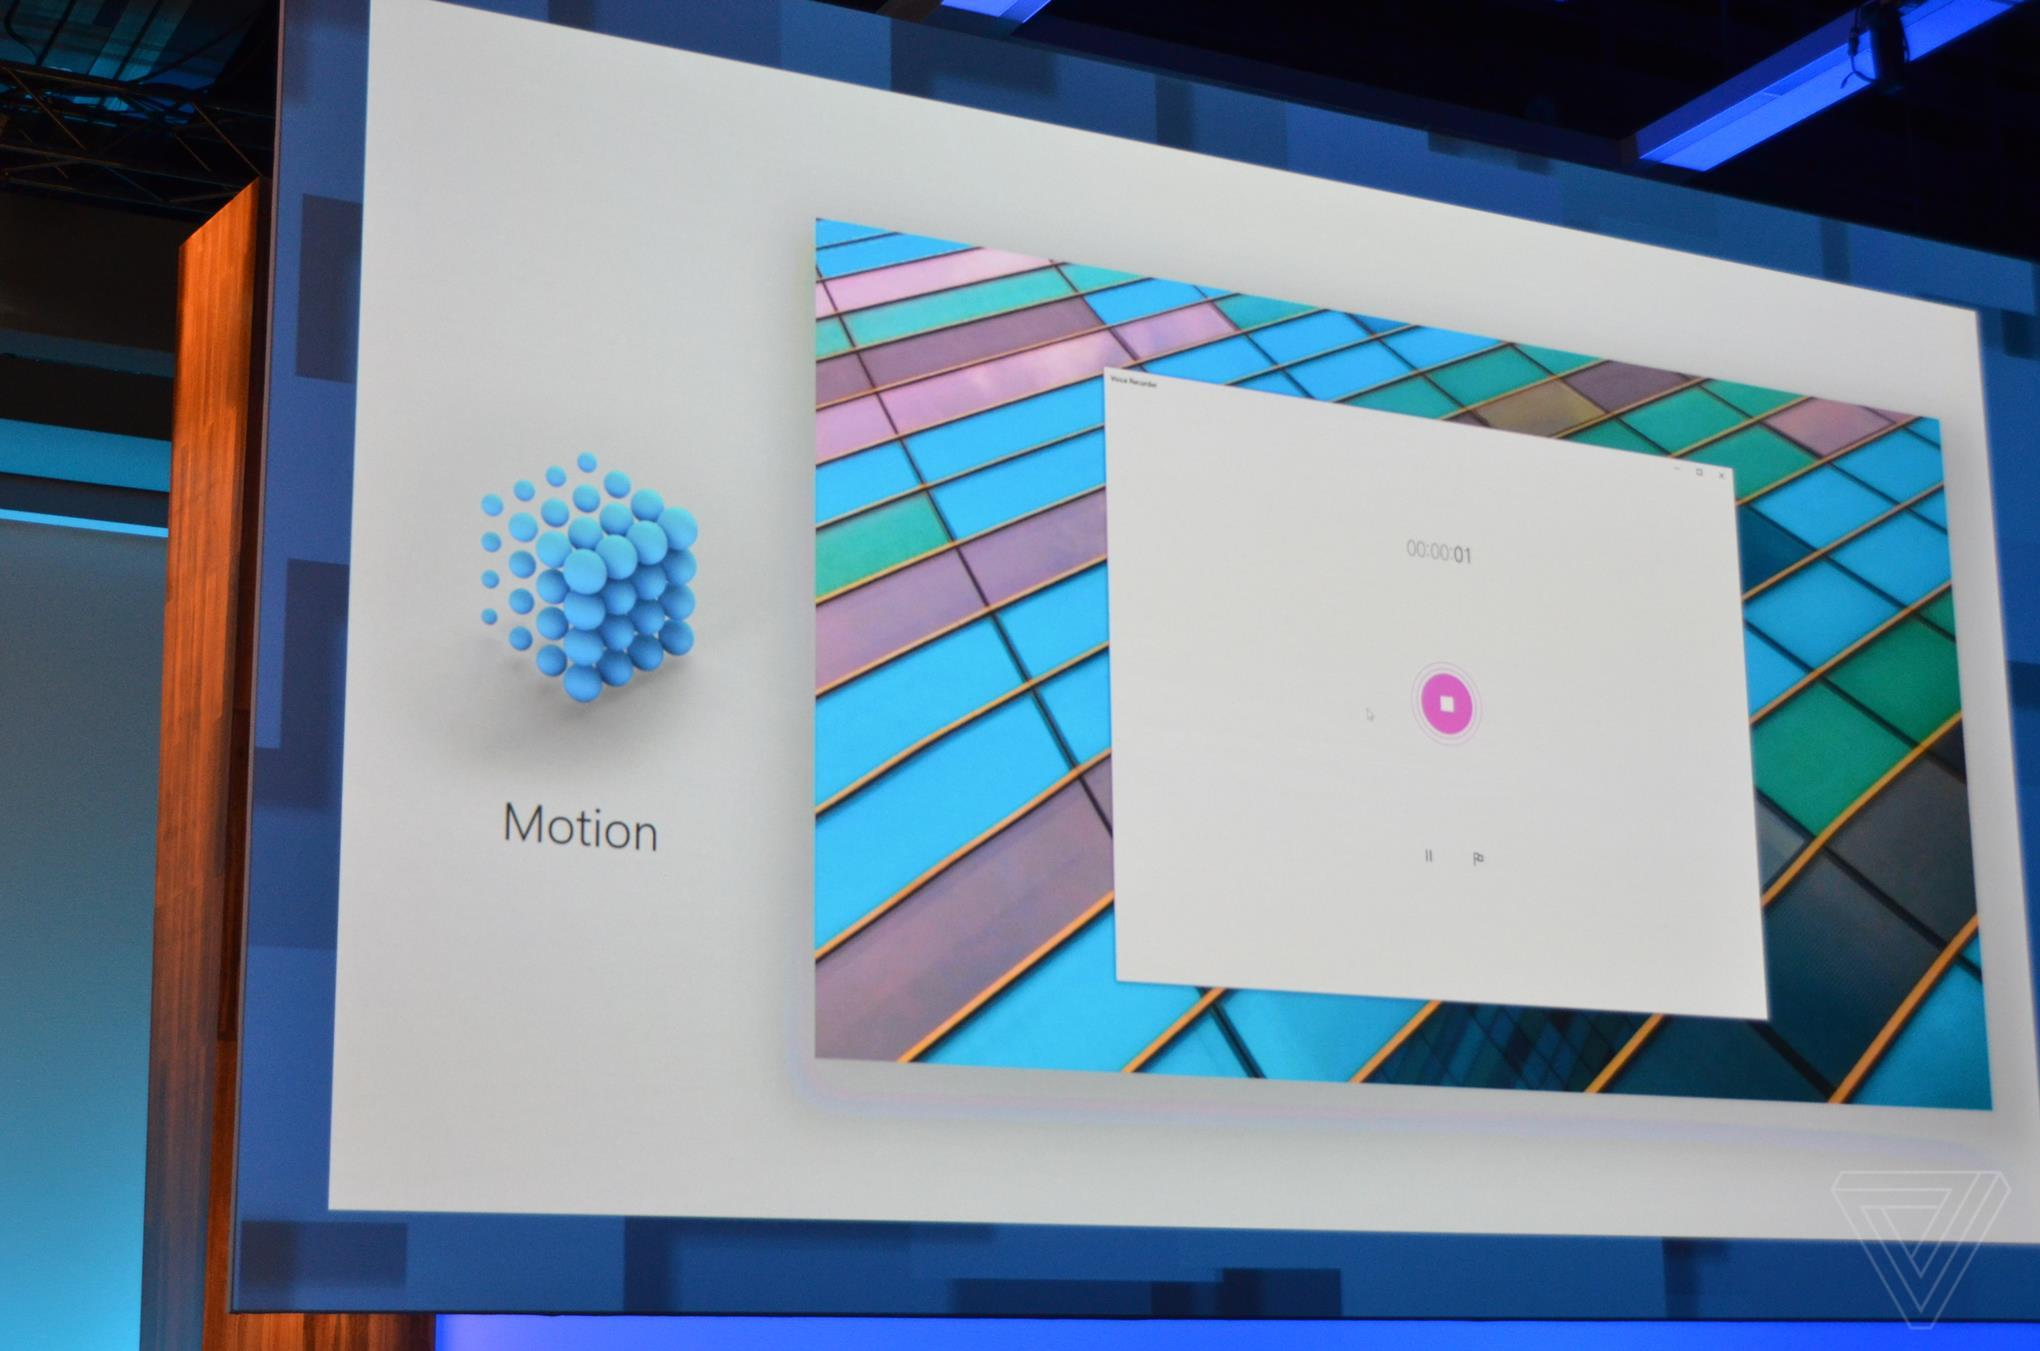 Design Pictures fluent design is microsoft's new metro ui for windows and more